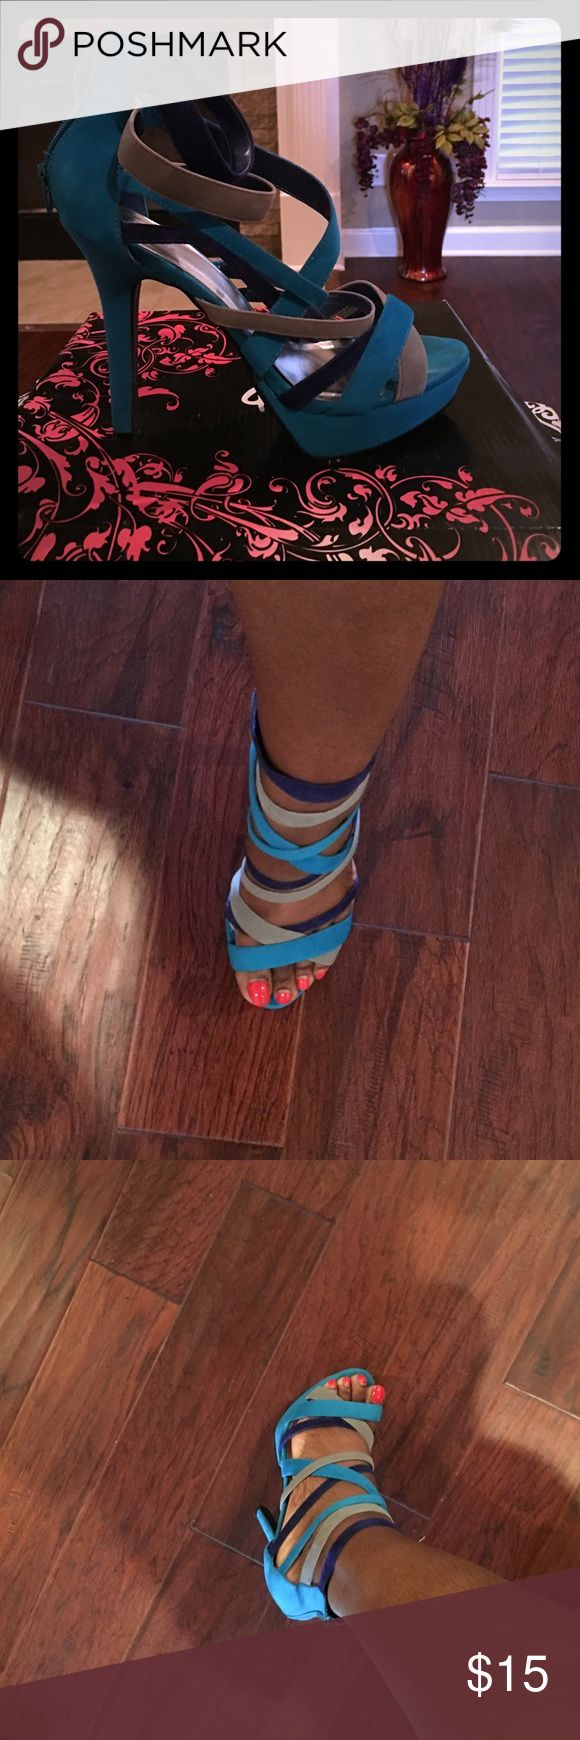 Multi color strappy heels Turquoise/gray/blue strappy heels Qupid Shoes Heels